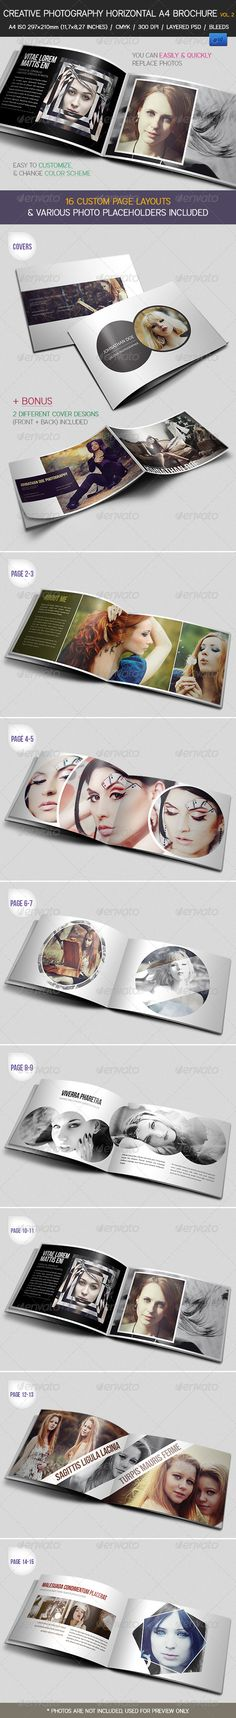 interesting elements added to the images to make them more interesting. (Creative Photography Portfolio A4 Brochure vol. 2 - GraphicRiver Item for Sale)